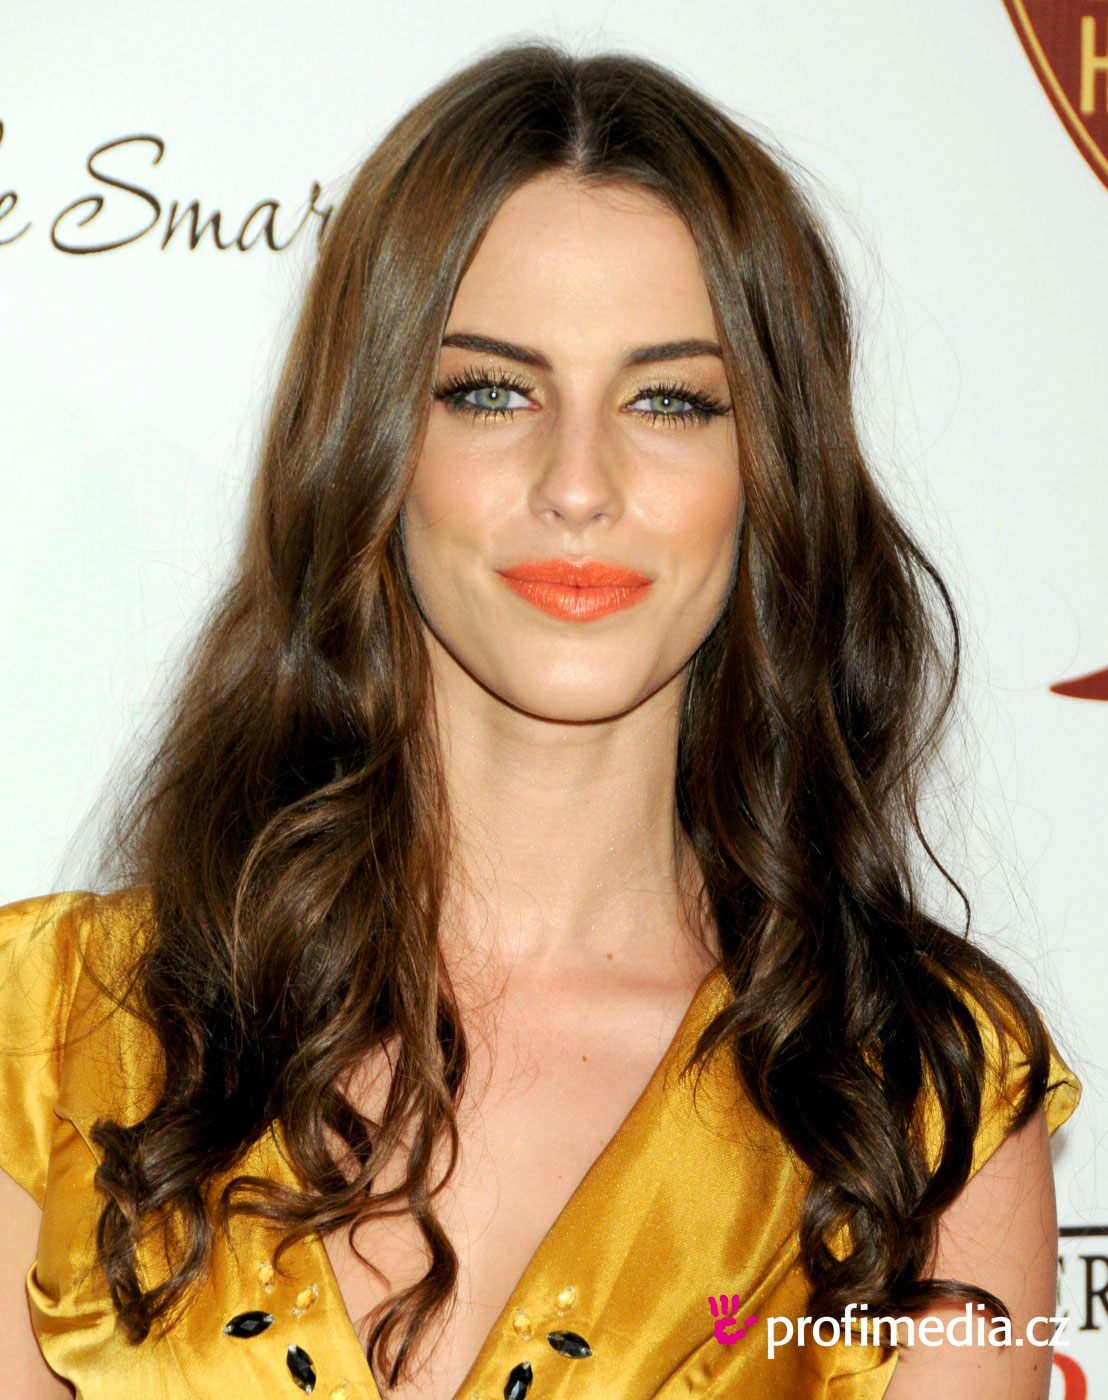 Jessica Lowndes - Gallery Photo Colection